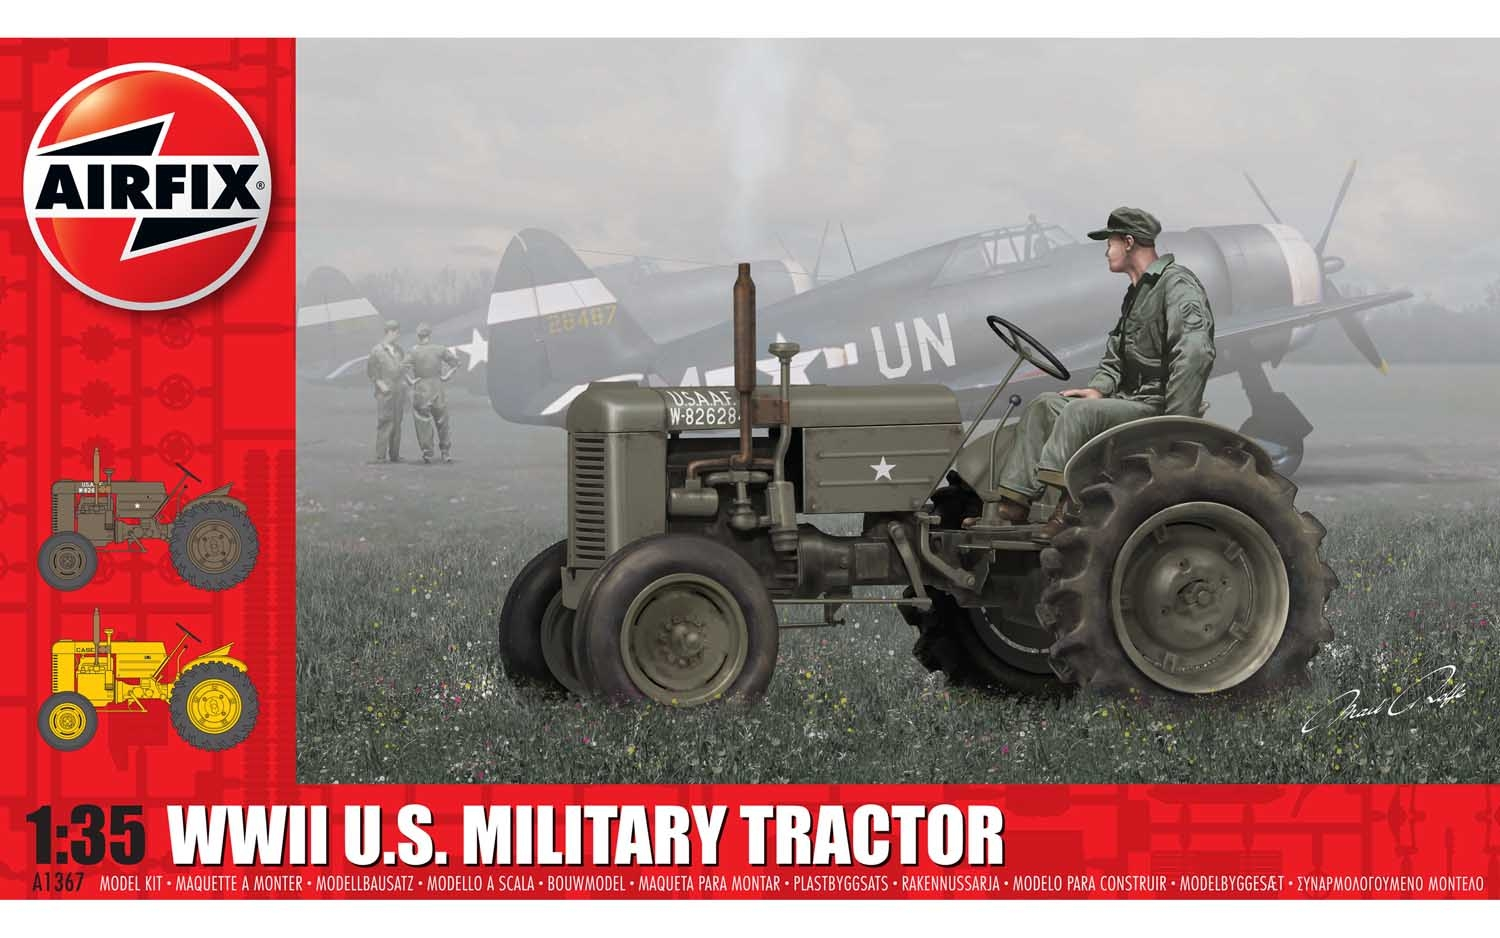 WWII U.S. Military Tractor - 1:35